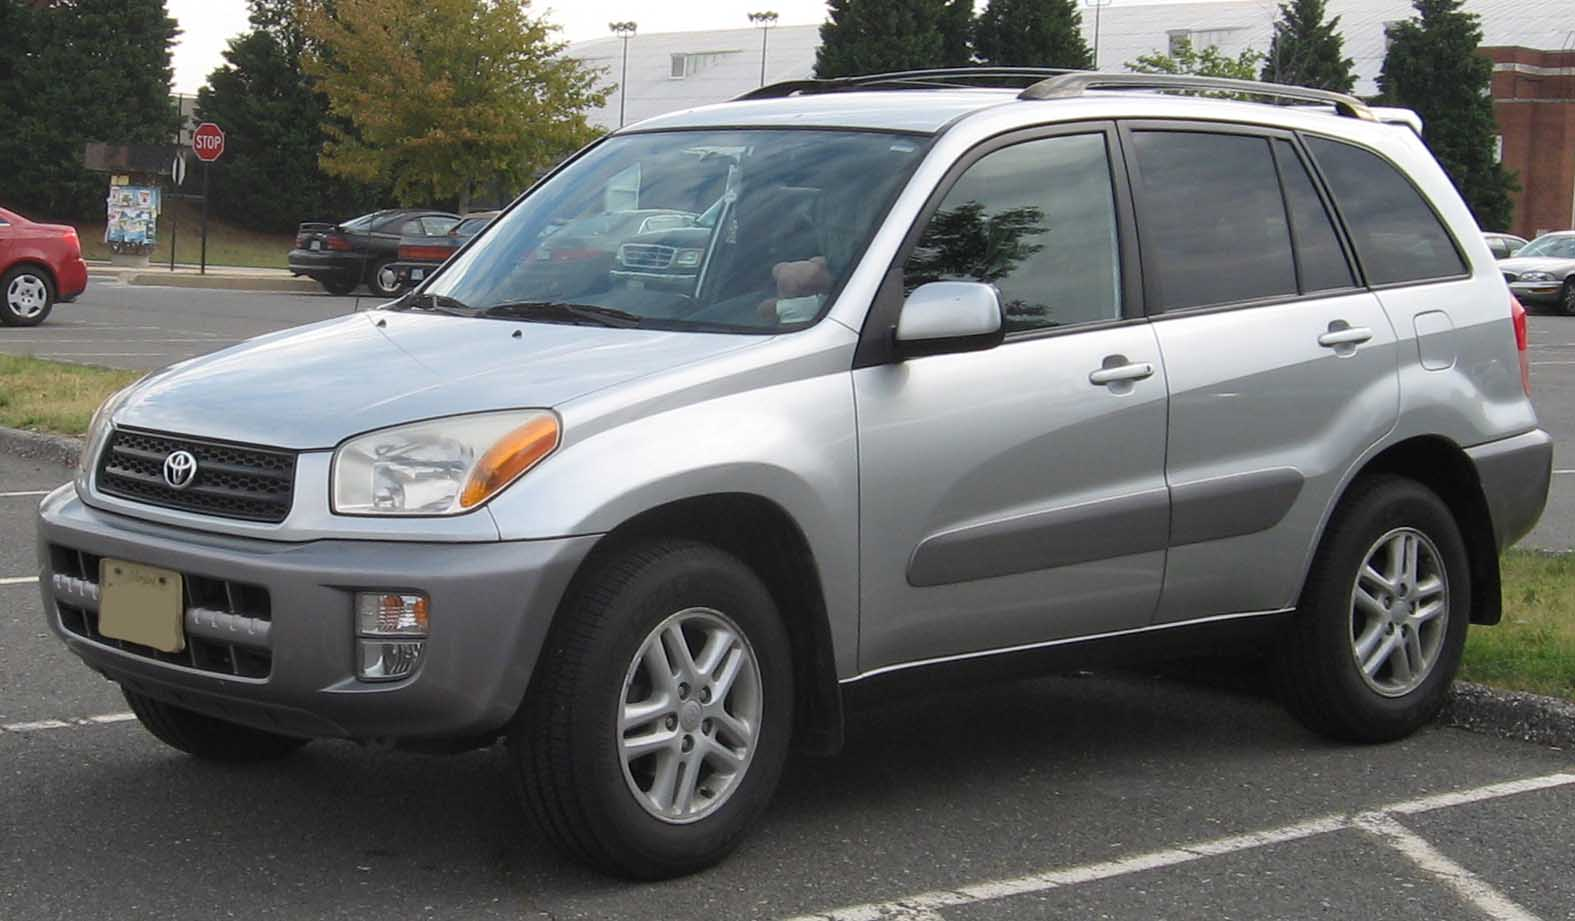 1998 Rav4 Custom >> File:2001-2003 Toyota RAV4.jpg - Wikimedia Commons